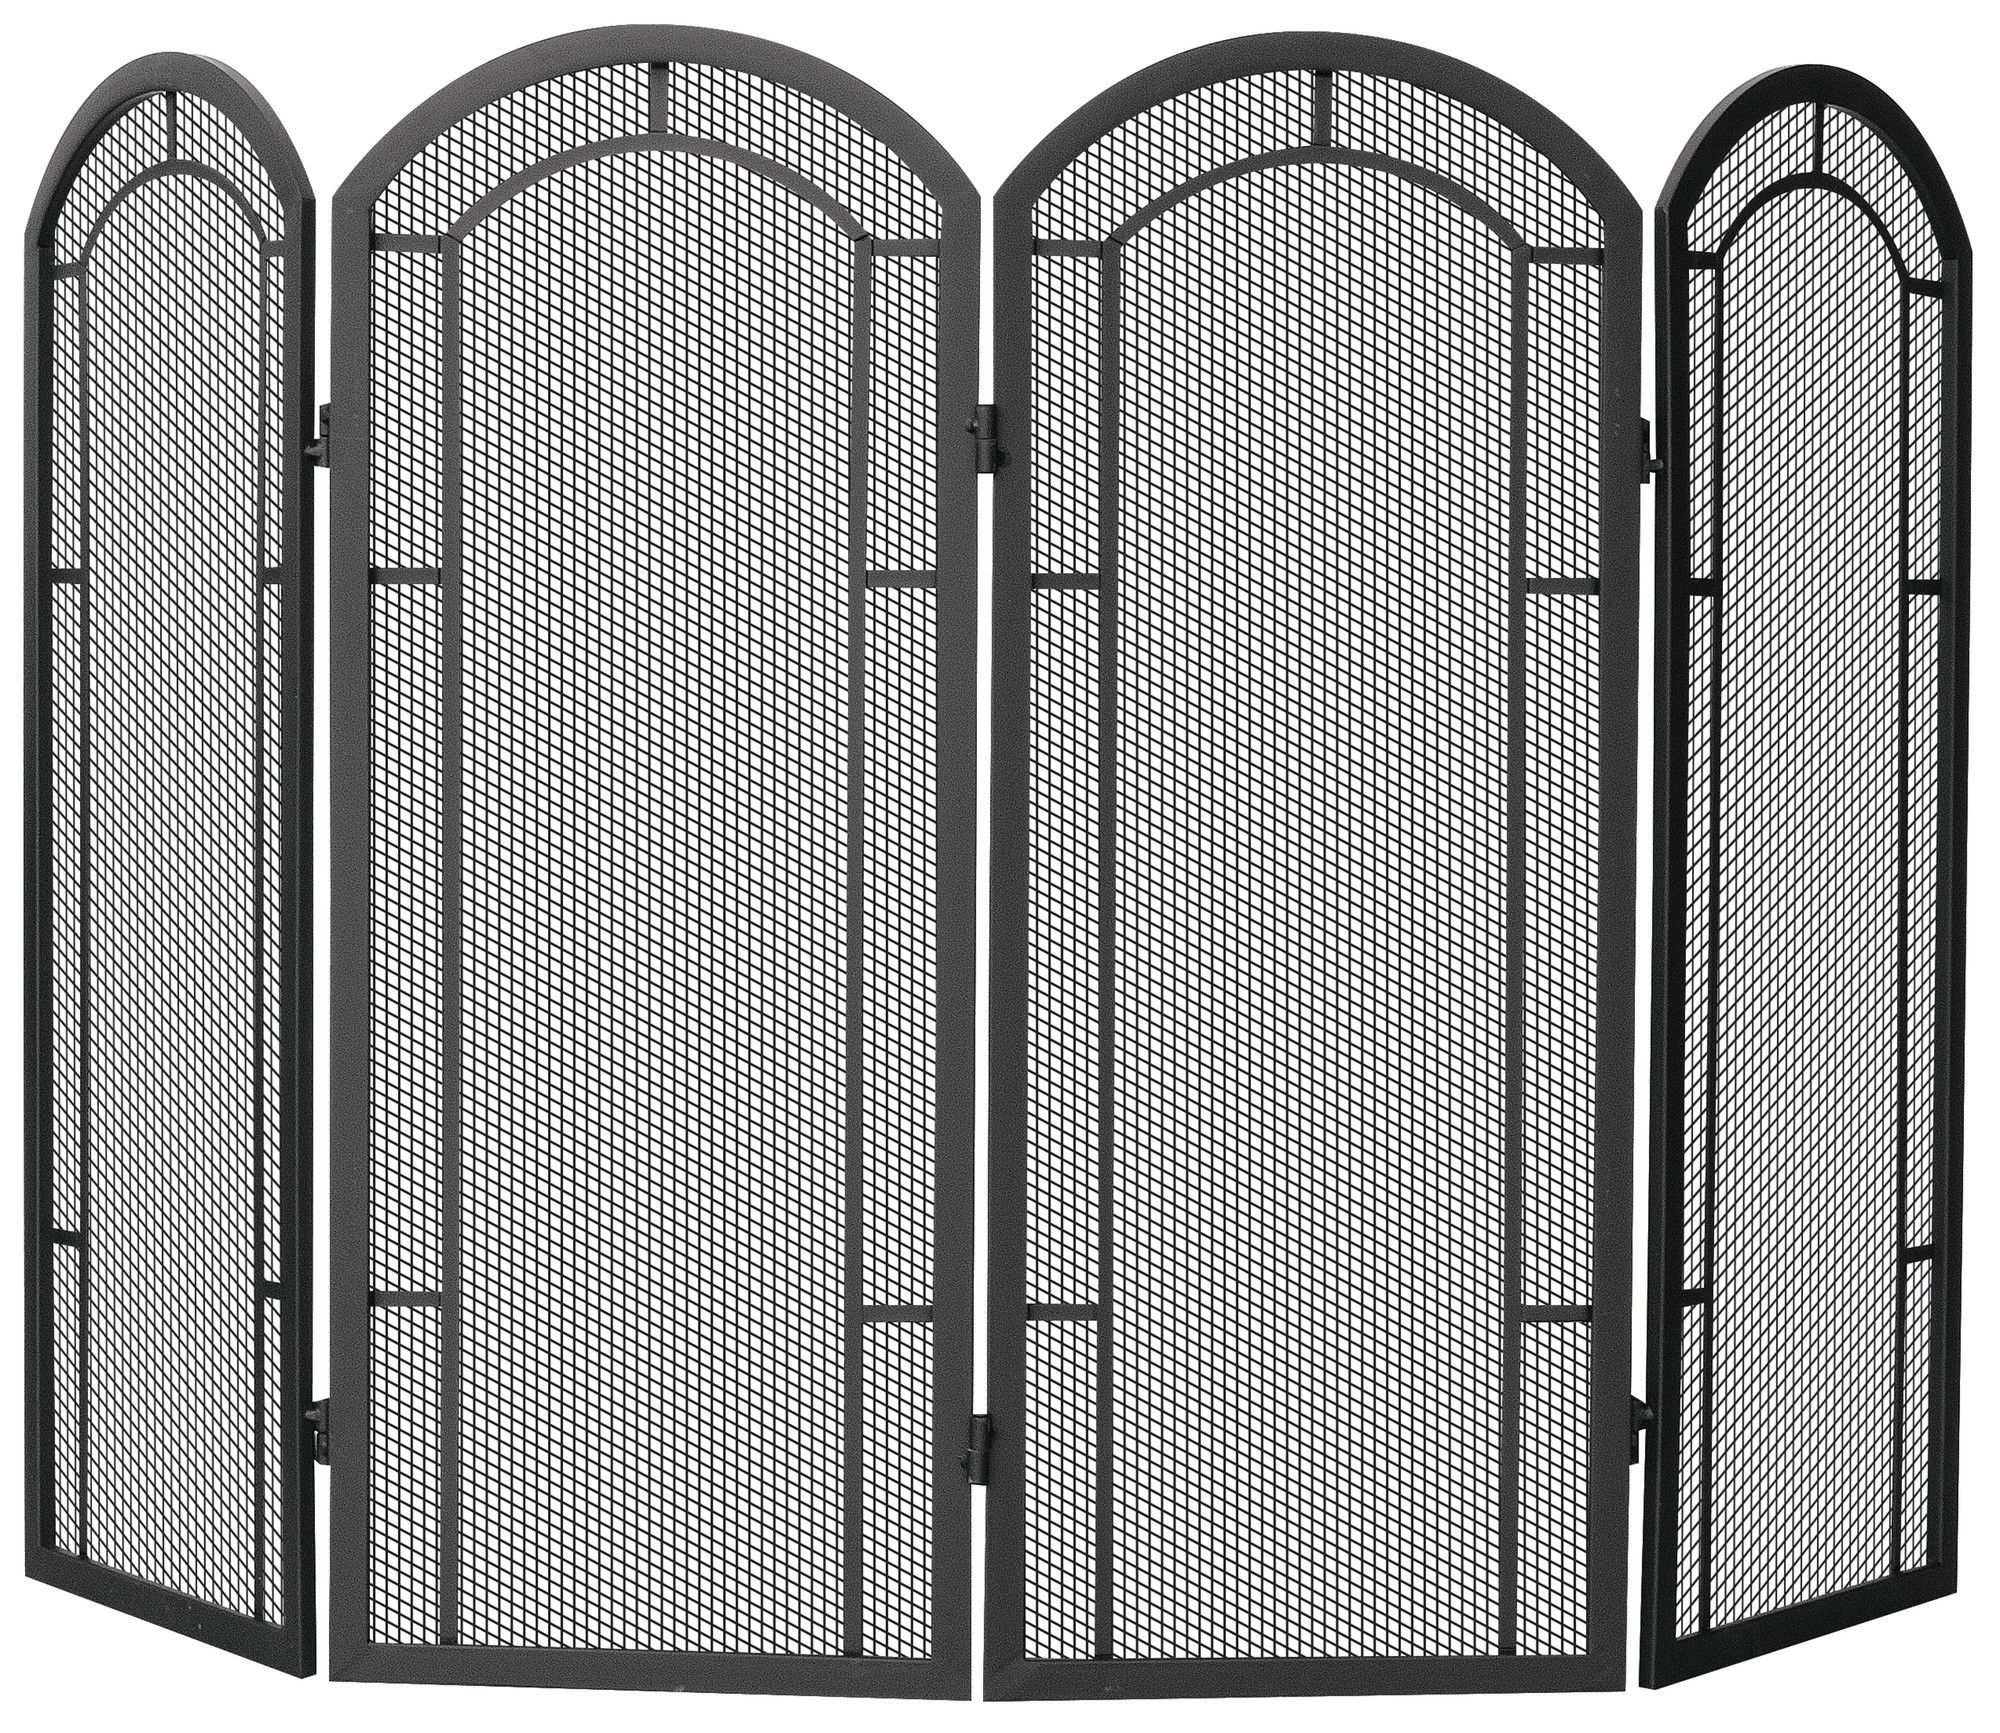 Craftsman style fireplace screen - 4 Panel Wrought Iron Fireplace Screen